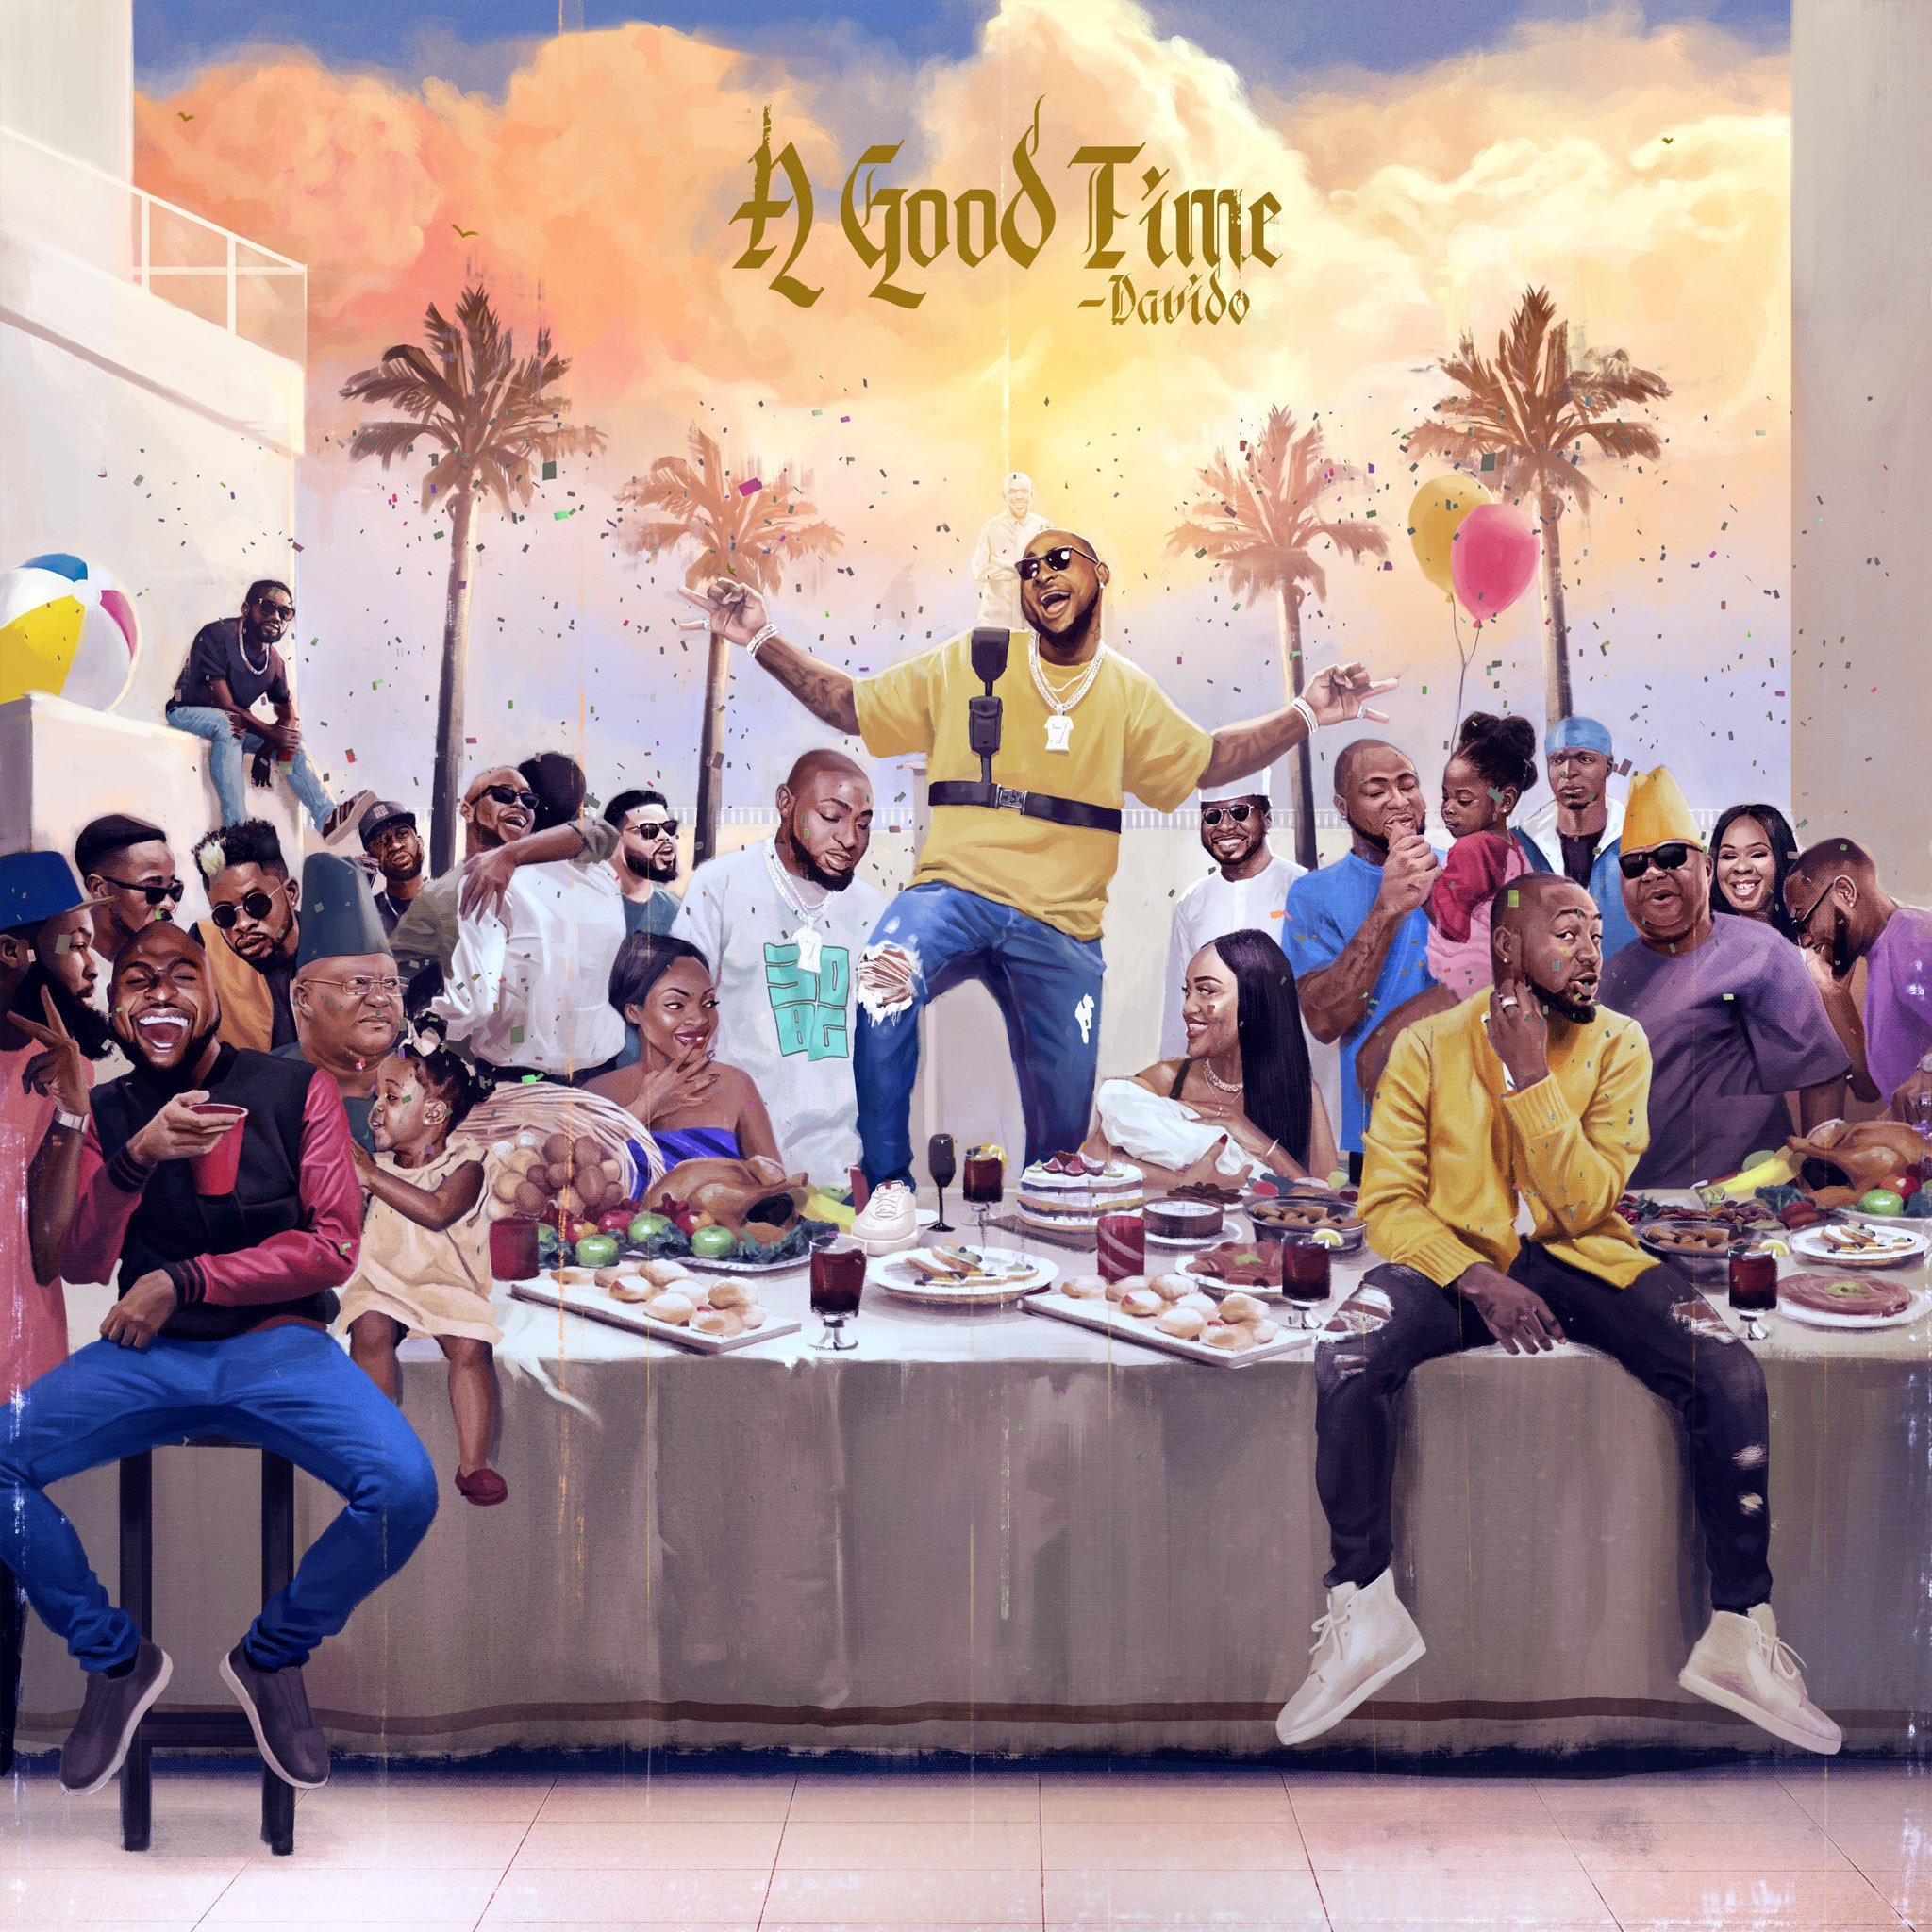 """A Good Time"" Album Cover"